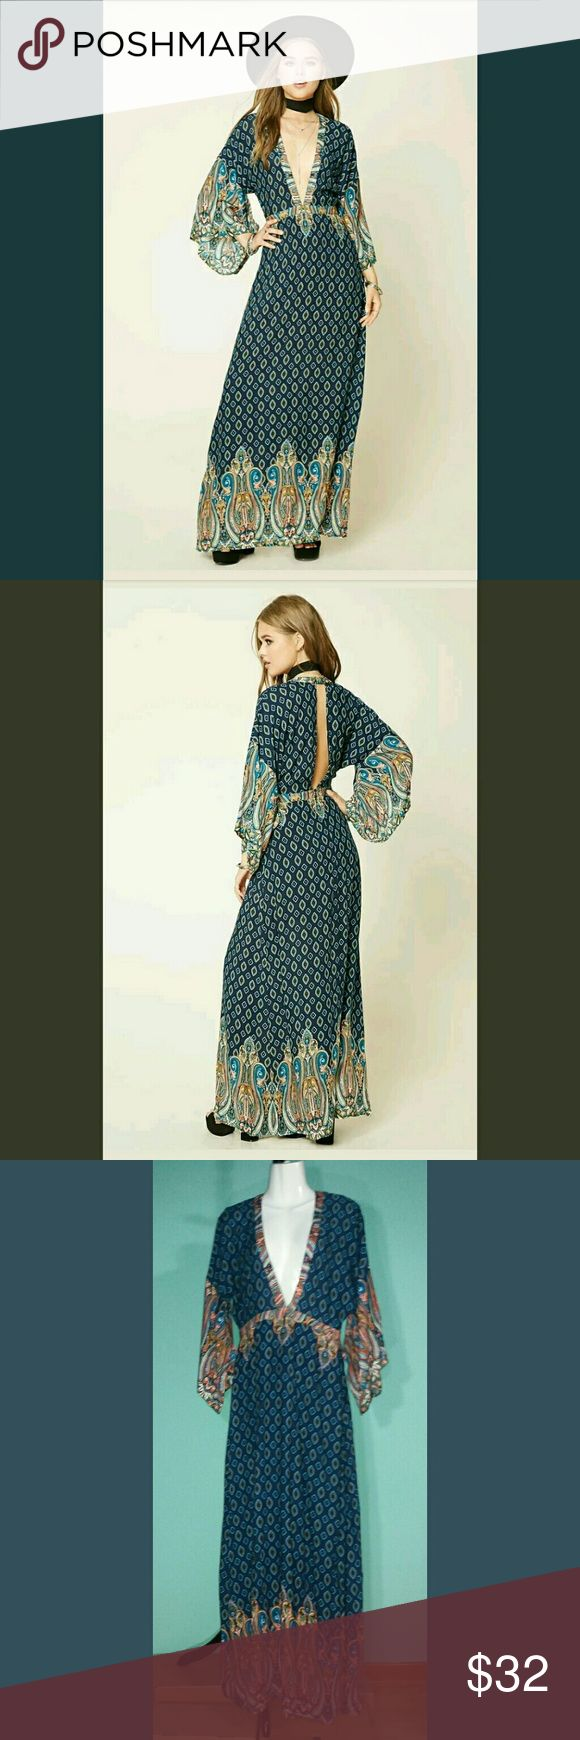 """Forever 21 Plunging Front Open Back Dress Colors: Navy Olive Paprika Marine Blue Cream BlushBlack  Flat Measurements: Shoulders: 28"""" Sleeve: 12""""Chest: 22"""" Side Length: 50.5"""" Back Length: 59"""" Zipper: 7""""  FEATURES: You will be Boho Coachella ready with dress. Lightweight, fun flirty & feminine. Contrasting Demask and Paisley prints. Vented Komono Sleeves. Short hidden back zipper. Lined from waist to upper thigh. 100% Rayon Shell /Polyester lining. Forever 21 Dresses Maxi"""